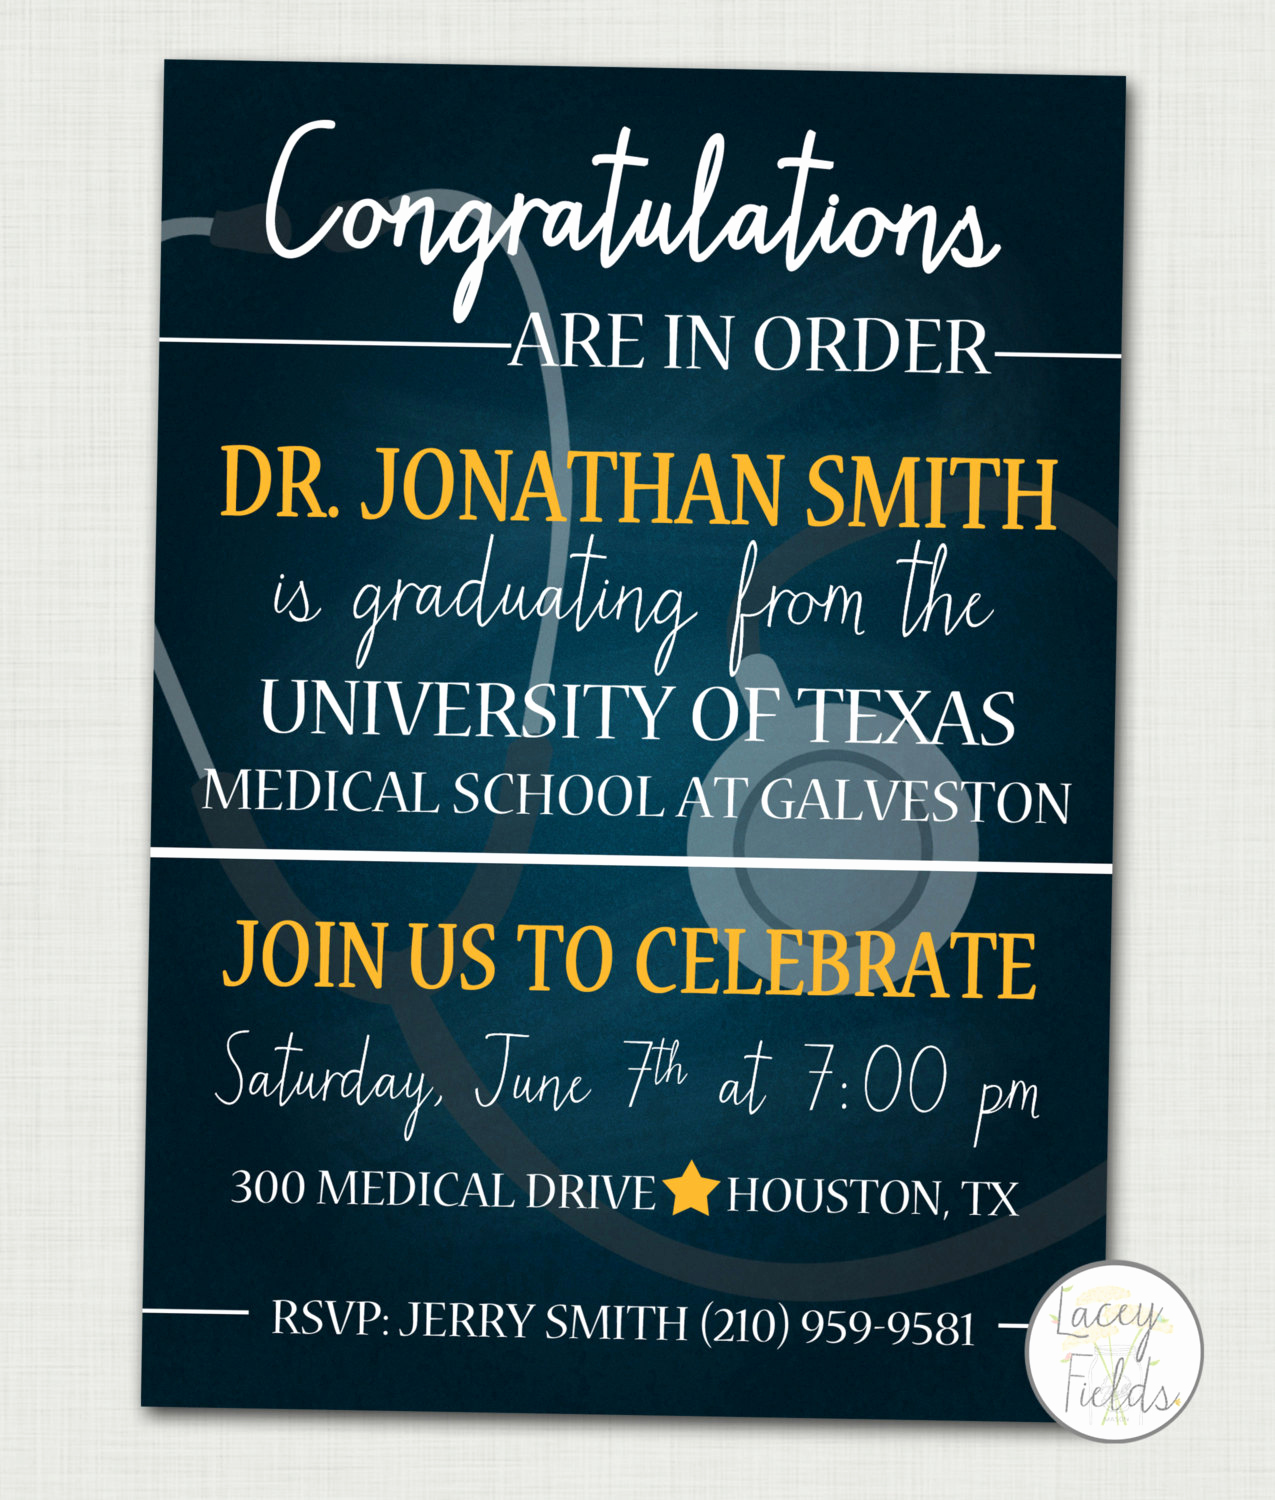 Medical School Graduation Invitation Beautiful Medical School Graduation Invitation Medical School Graduation